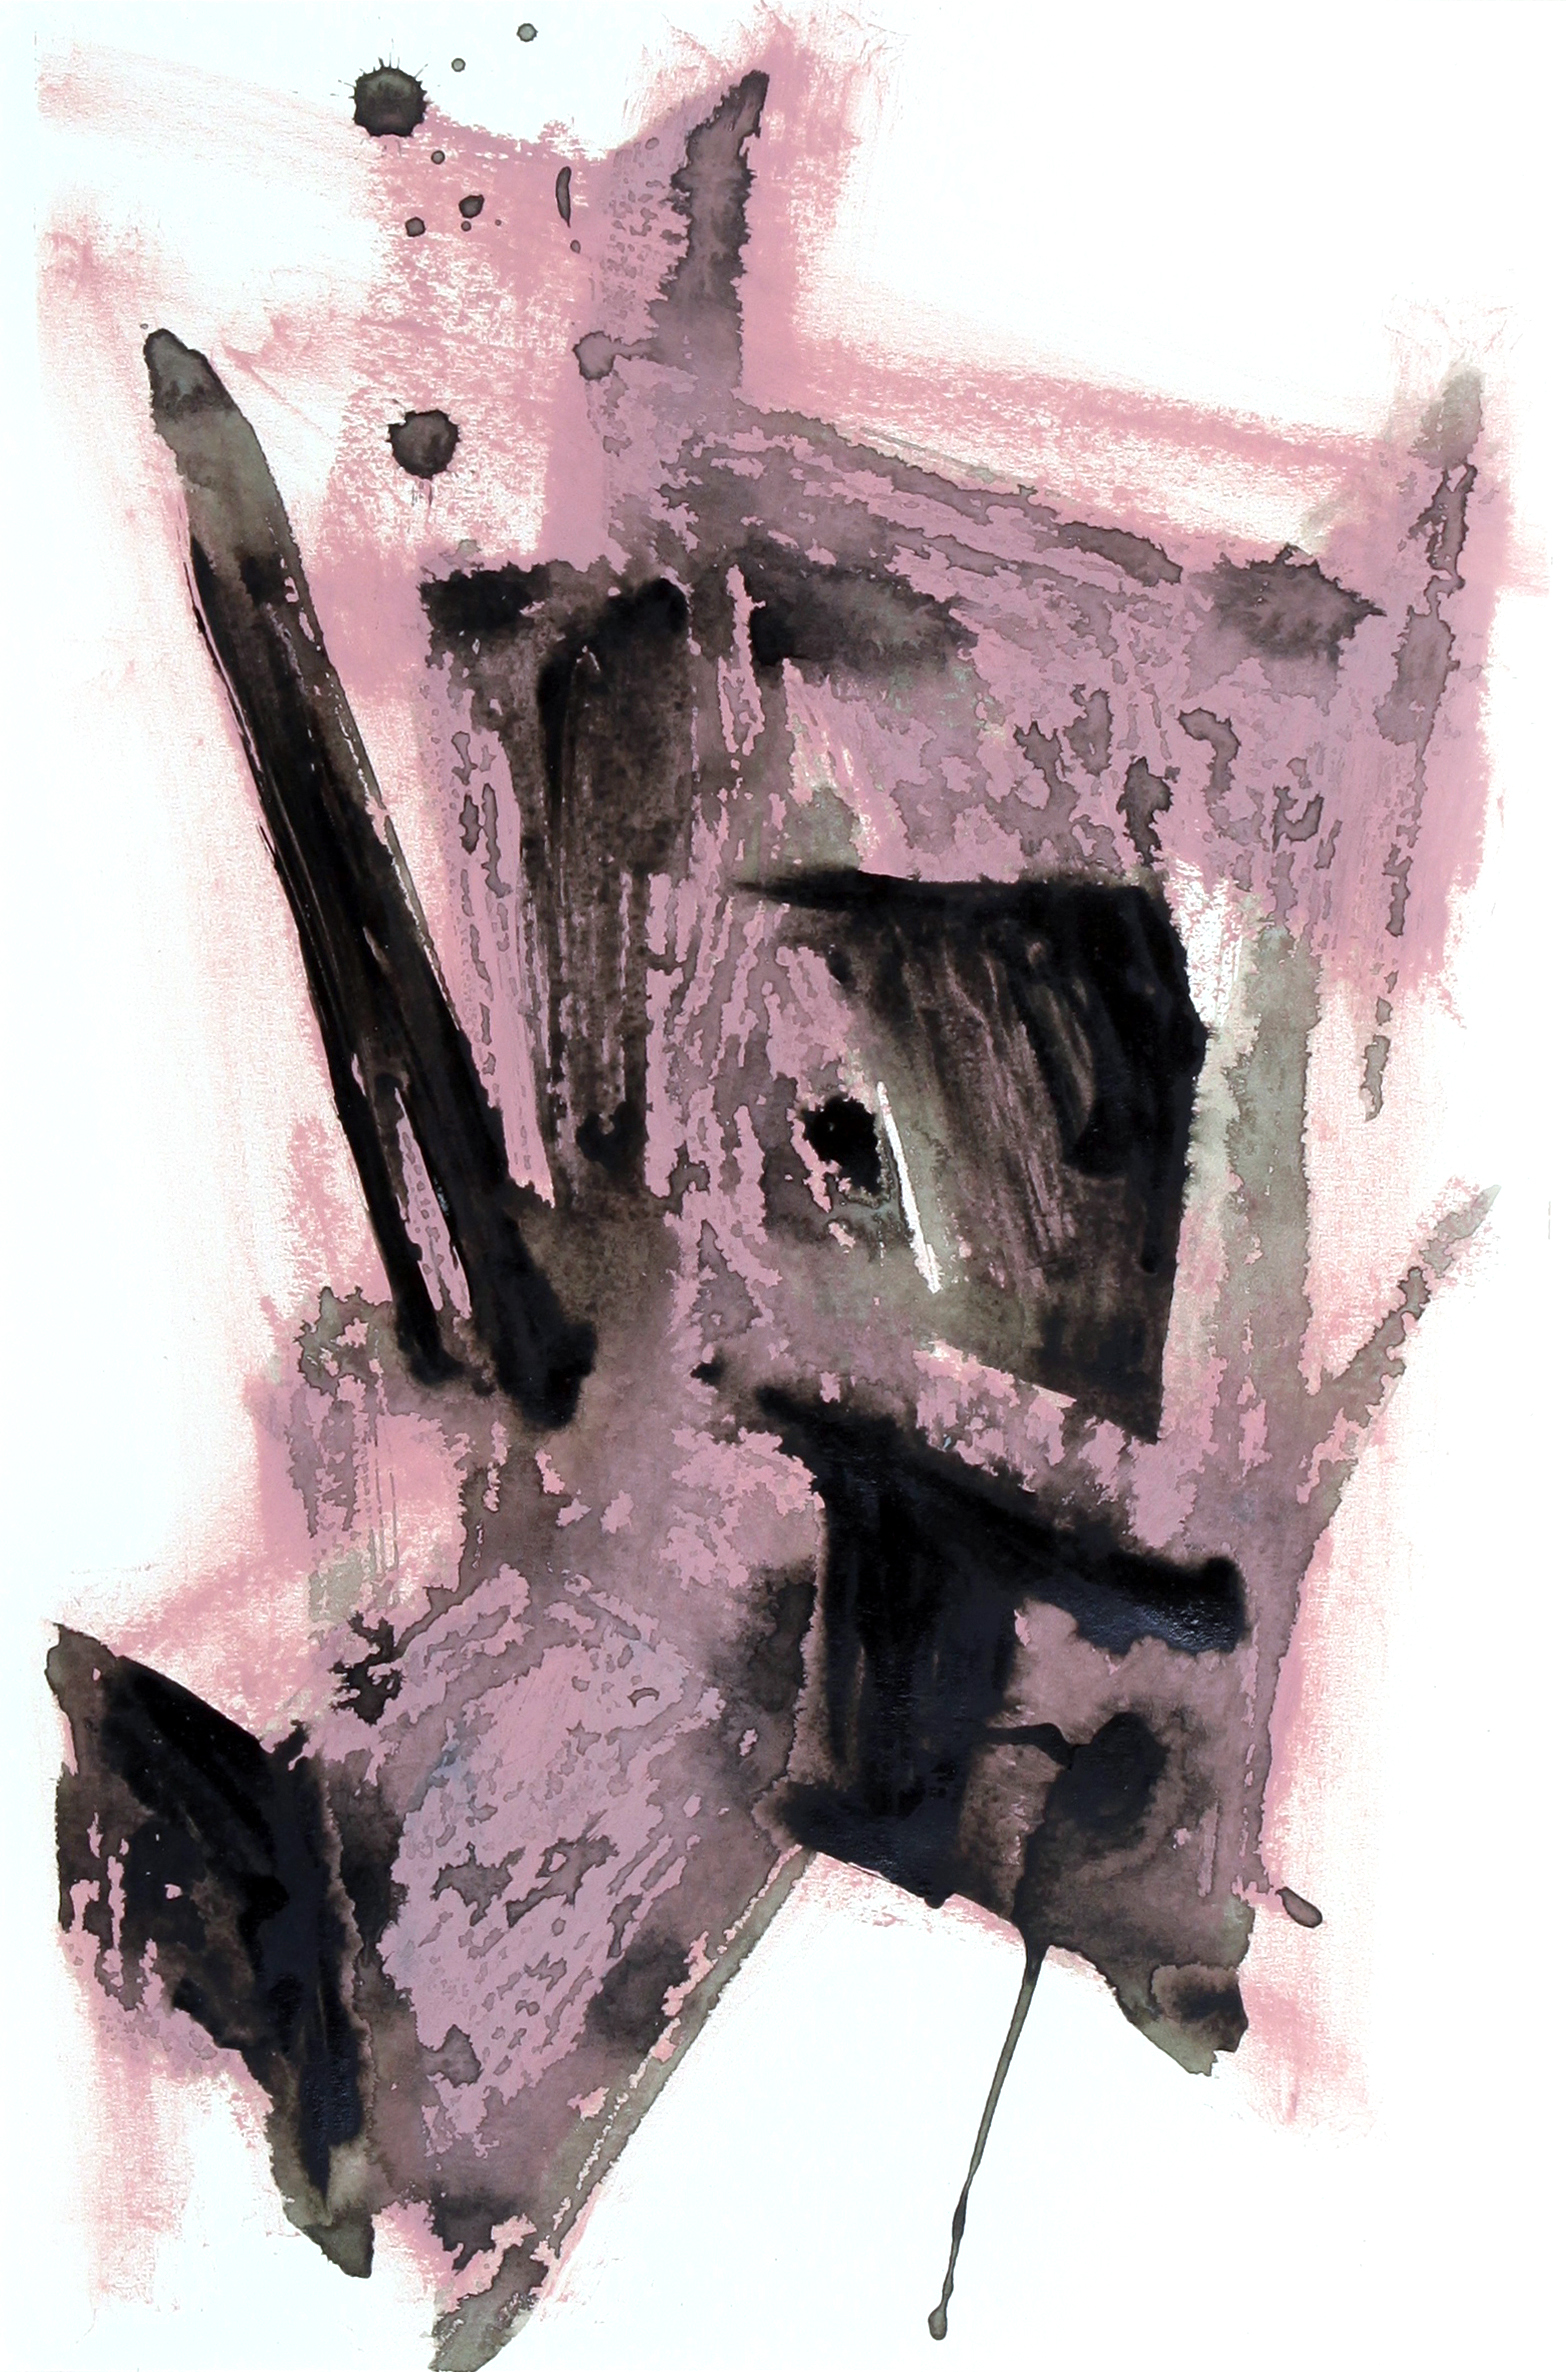 box_02  oil stick and acrylic on paper  38 cm X 55 cm  2014